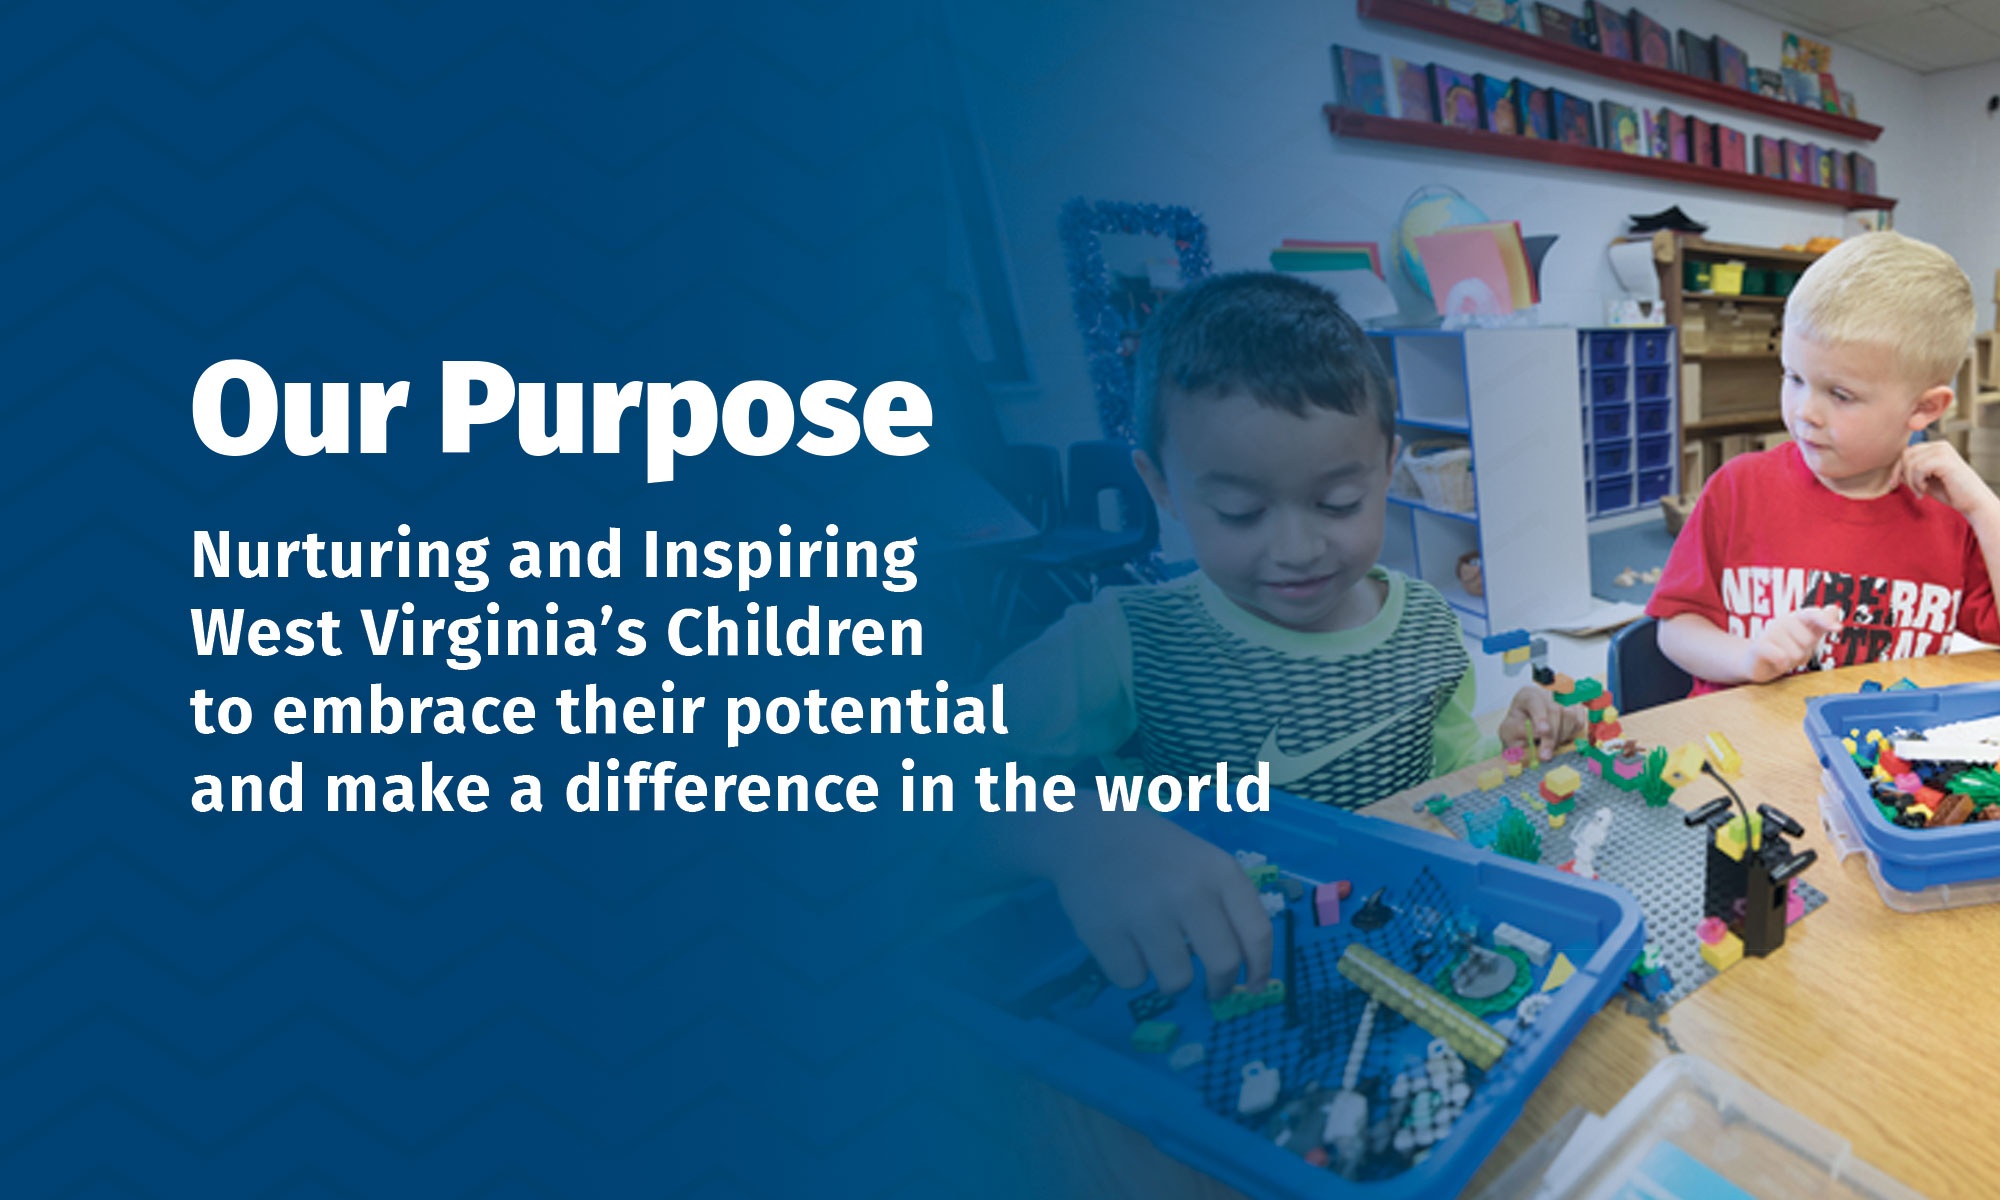 Our Purpose - Mission